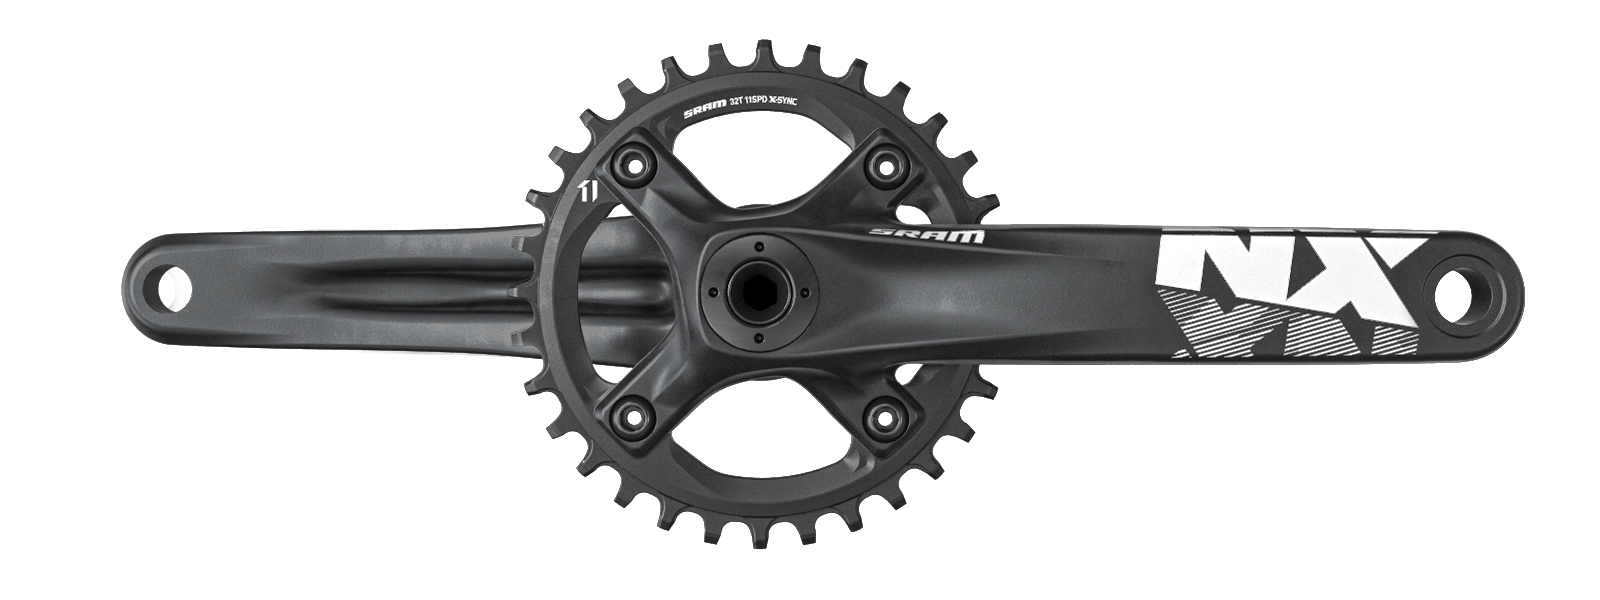 SM_NX_Crank_1000_32T_AL_Spider_30mm_Side_Black_MH.jpg